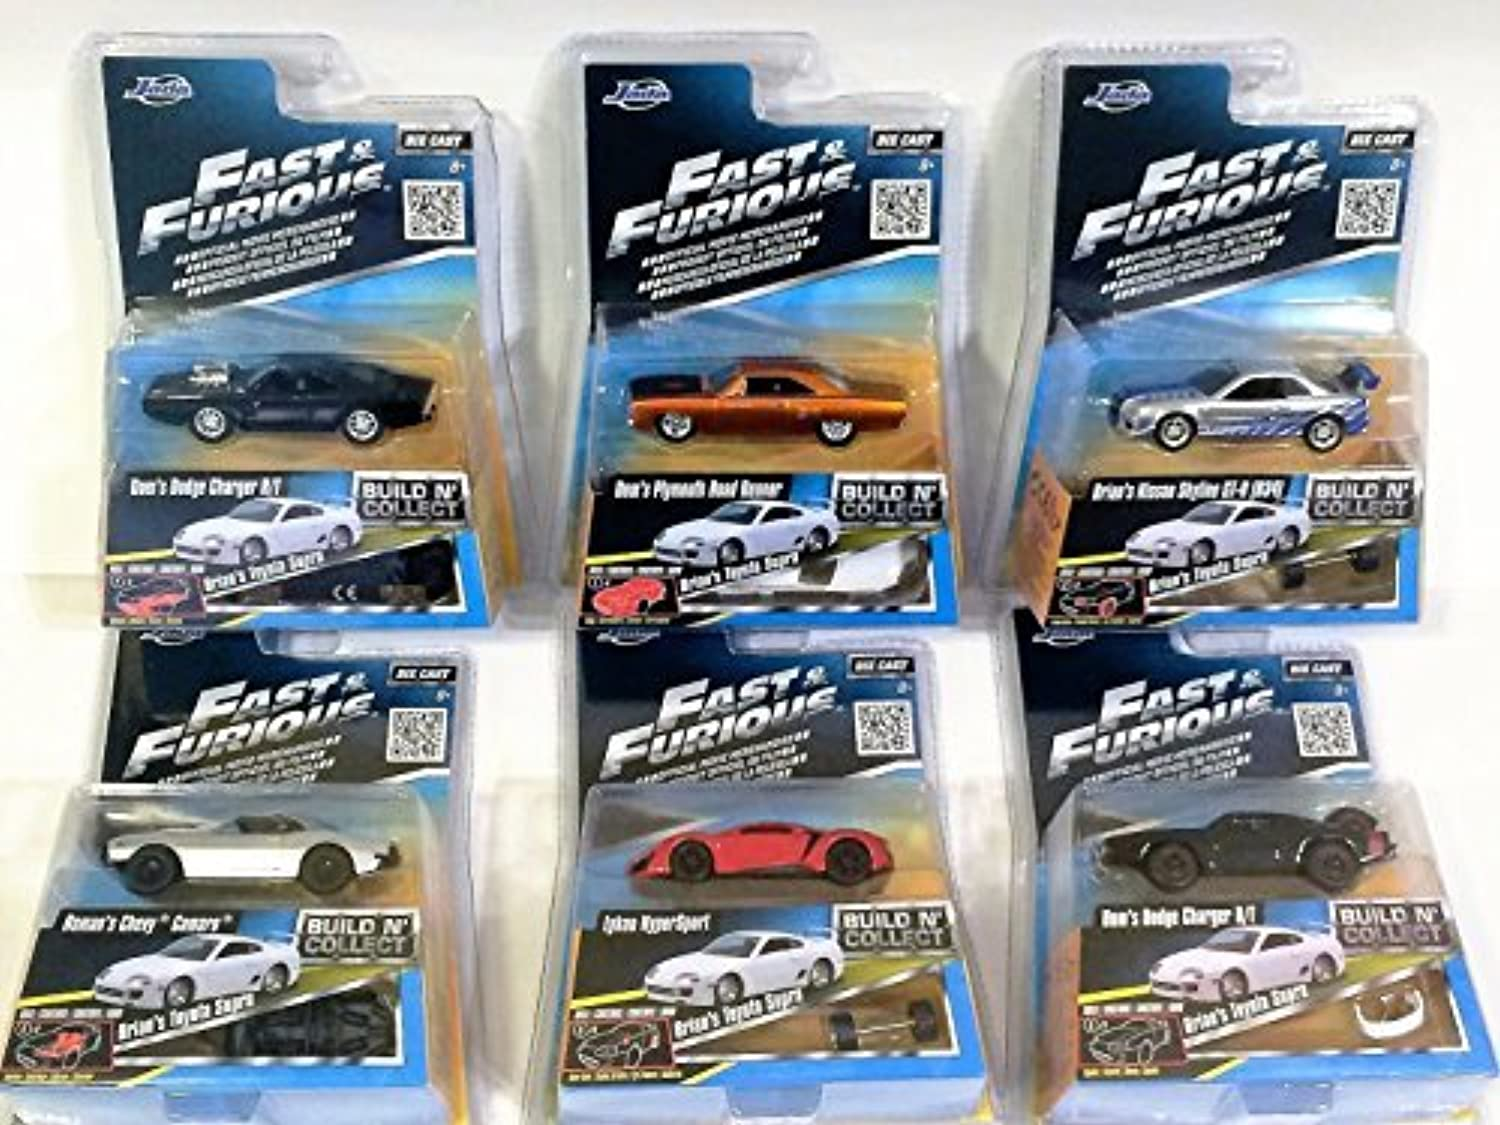 ofreciendo 100% Fast & Furious Build N N N Collect Complete Collection of 6 Die-cast Coches   Bonus Brians Jugueteota Supra (Jada Juguetes). 1 55 scale. by Fast & Furious  nueva gama alta exclusiva